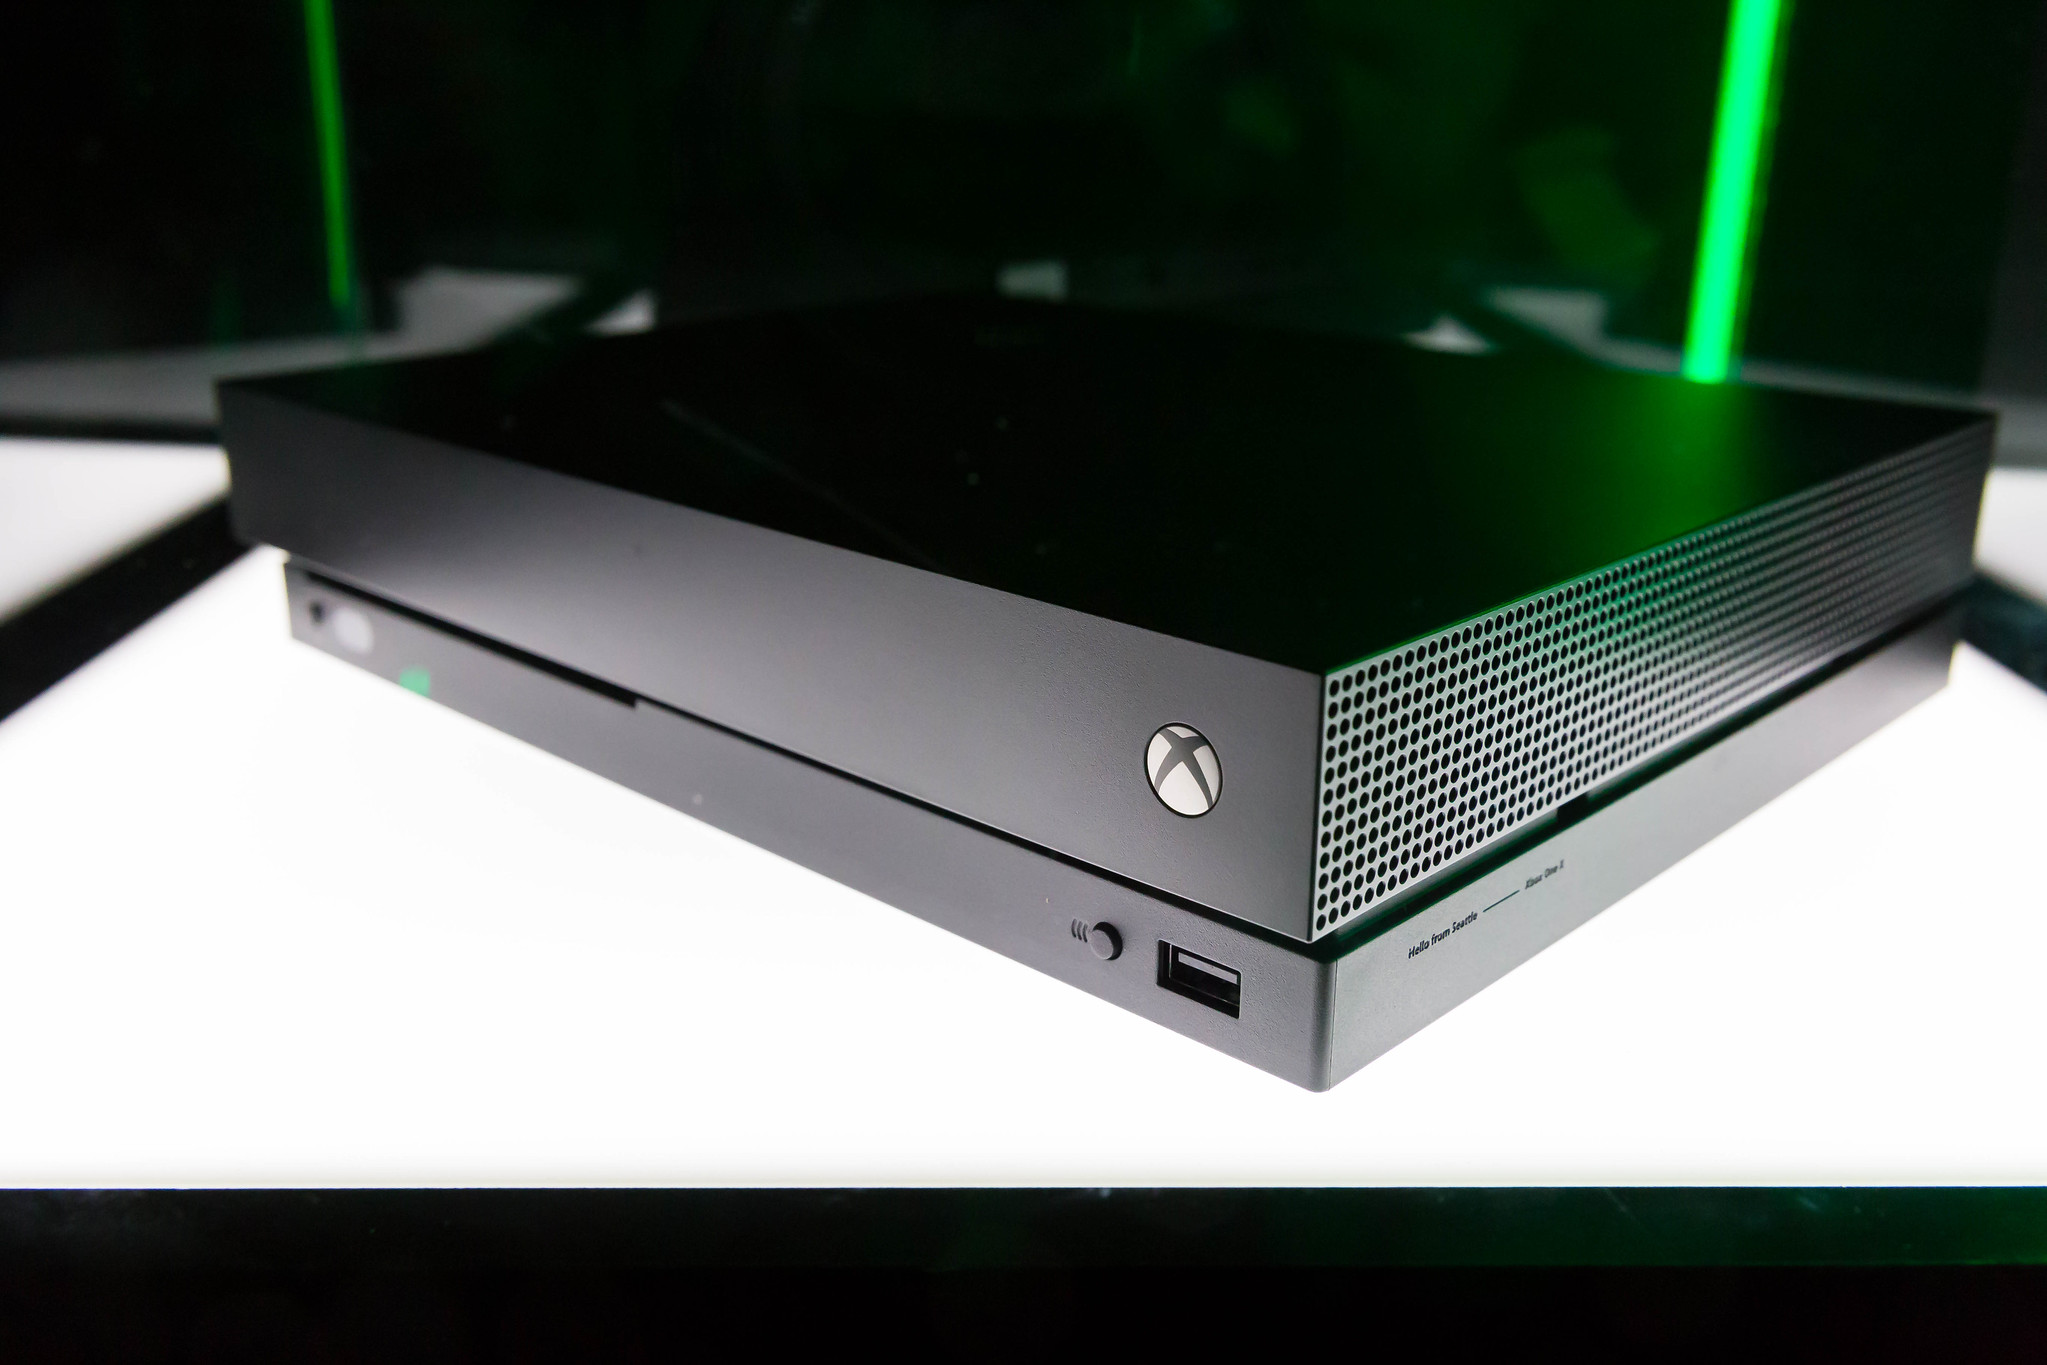 Microsoft Xbox One X (Project Scorpio) by wuestenigel, on Flickr